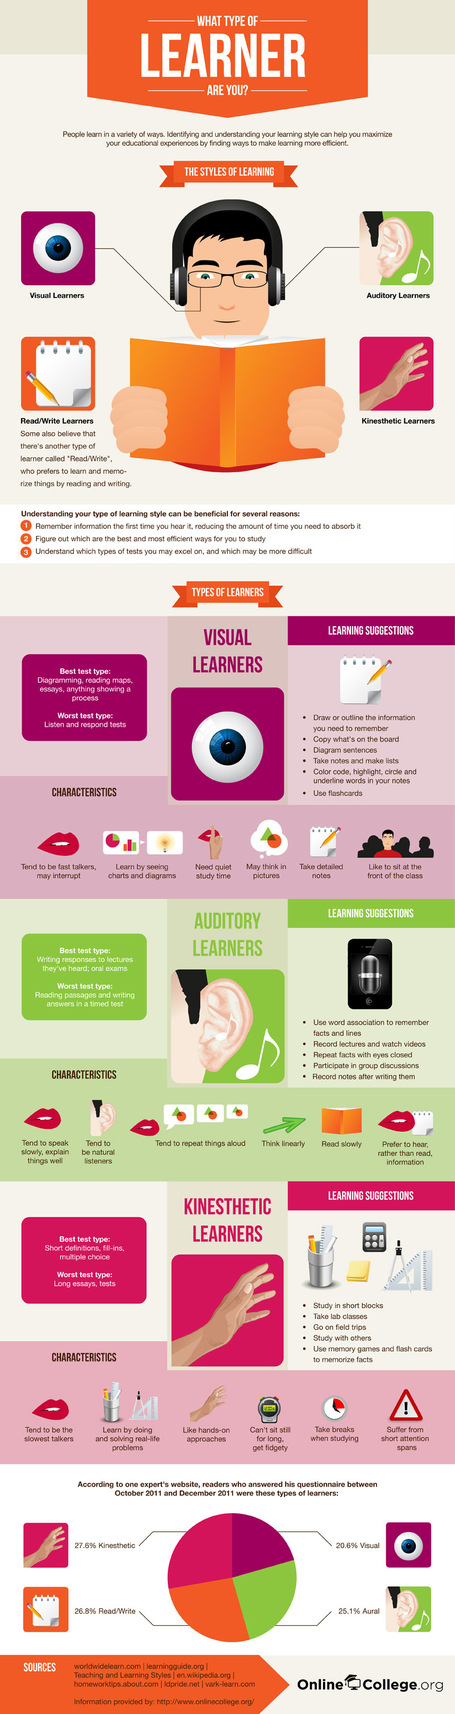 What Type of Learner Are You? [Infographic] | Learning Happens Everywhere! | Scoop.it